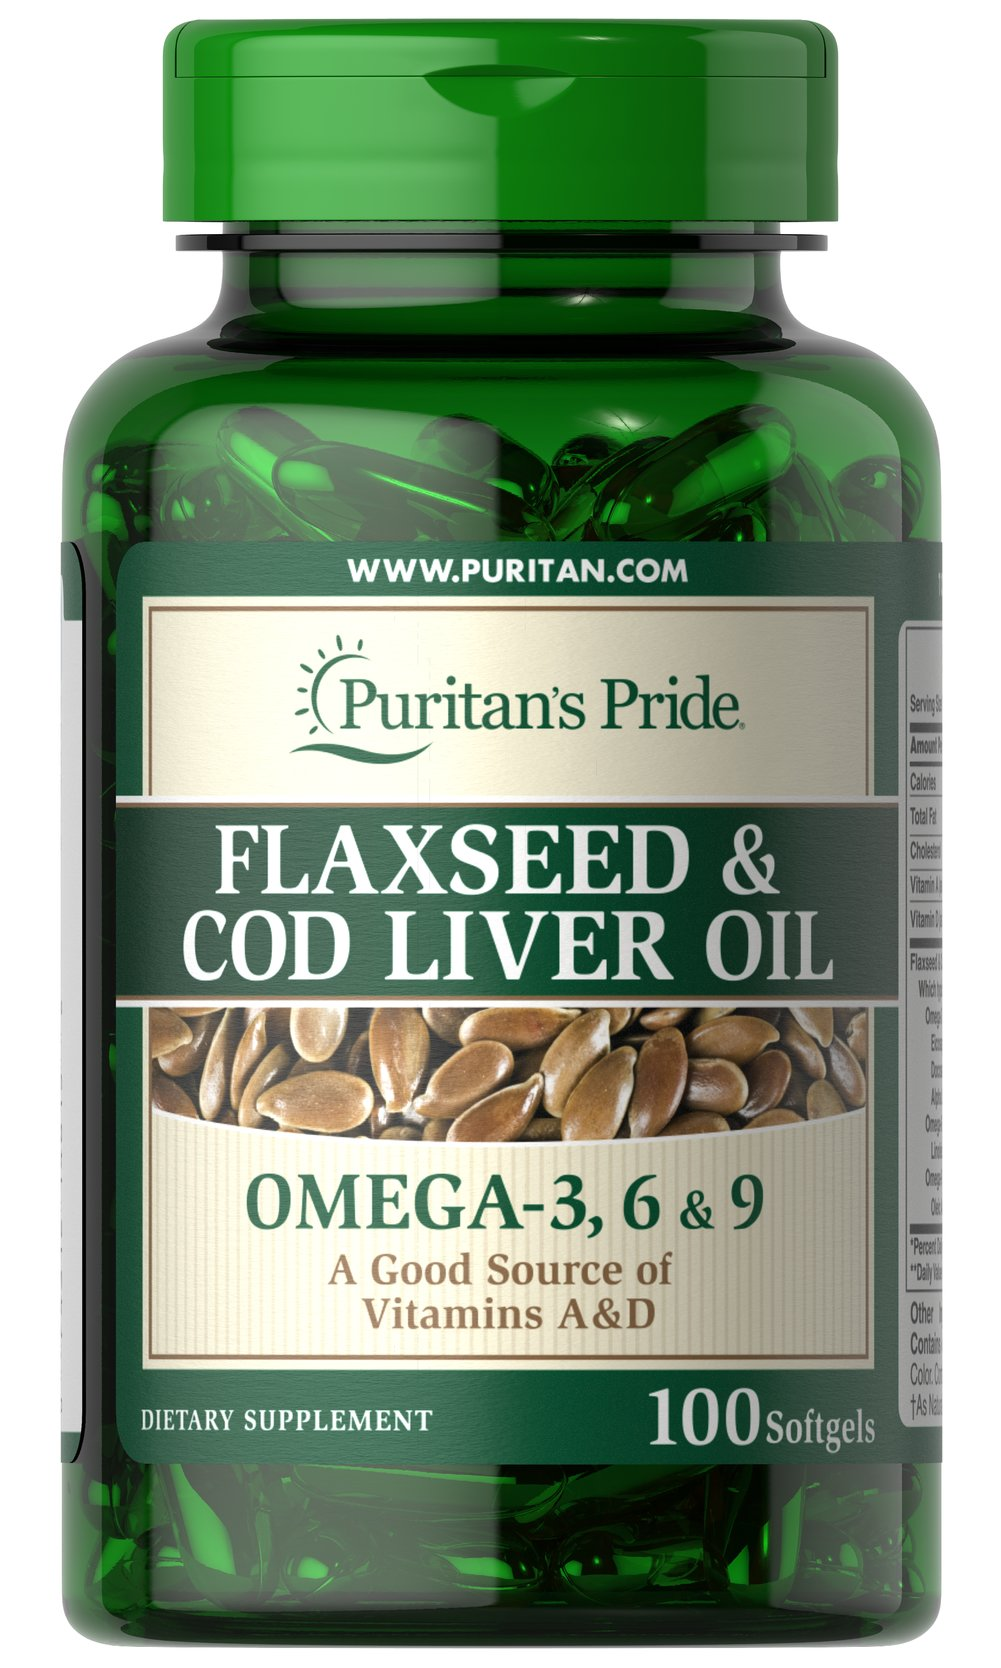 Flaxseed & Cod Liver Oil 1000 mg <p>Both <b>flaxseed and cod liver oil</b> are rich in essential <i>fatty acids</i>, which may play an important role in the proper functioning of the cardiovascular system.  Each softgel provides (500 mg) of cold-pressed linseed oil, plus enough cod liver oil to supply (1250 I.U.) of Vitamin A and (125 I.U.) of Vitamin D.</p> 100 Softgels 1000 mg $12.99